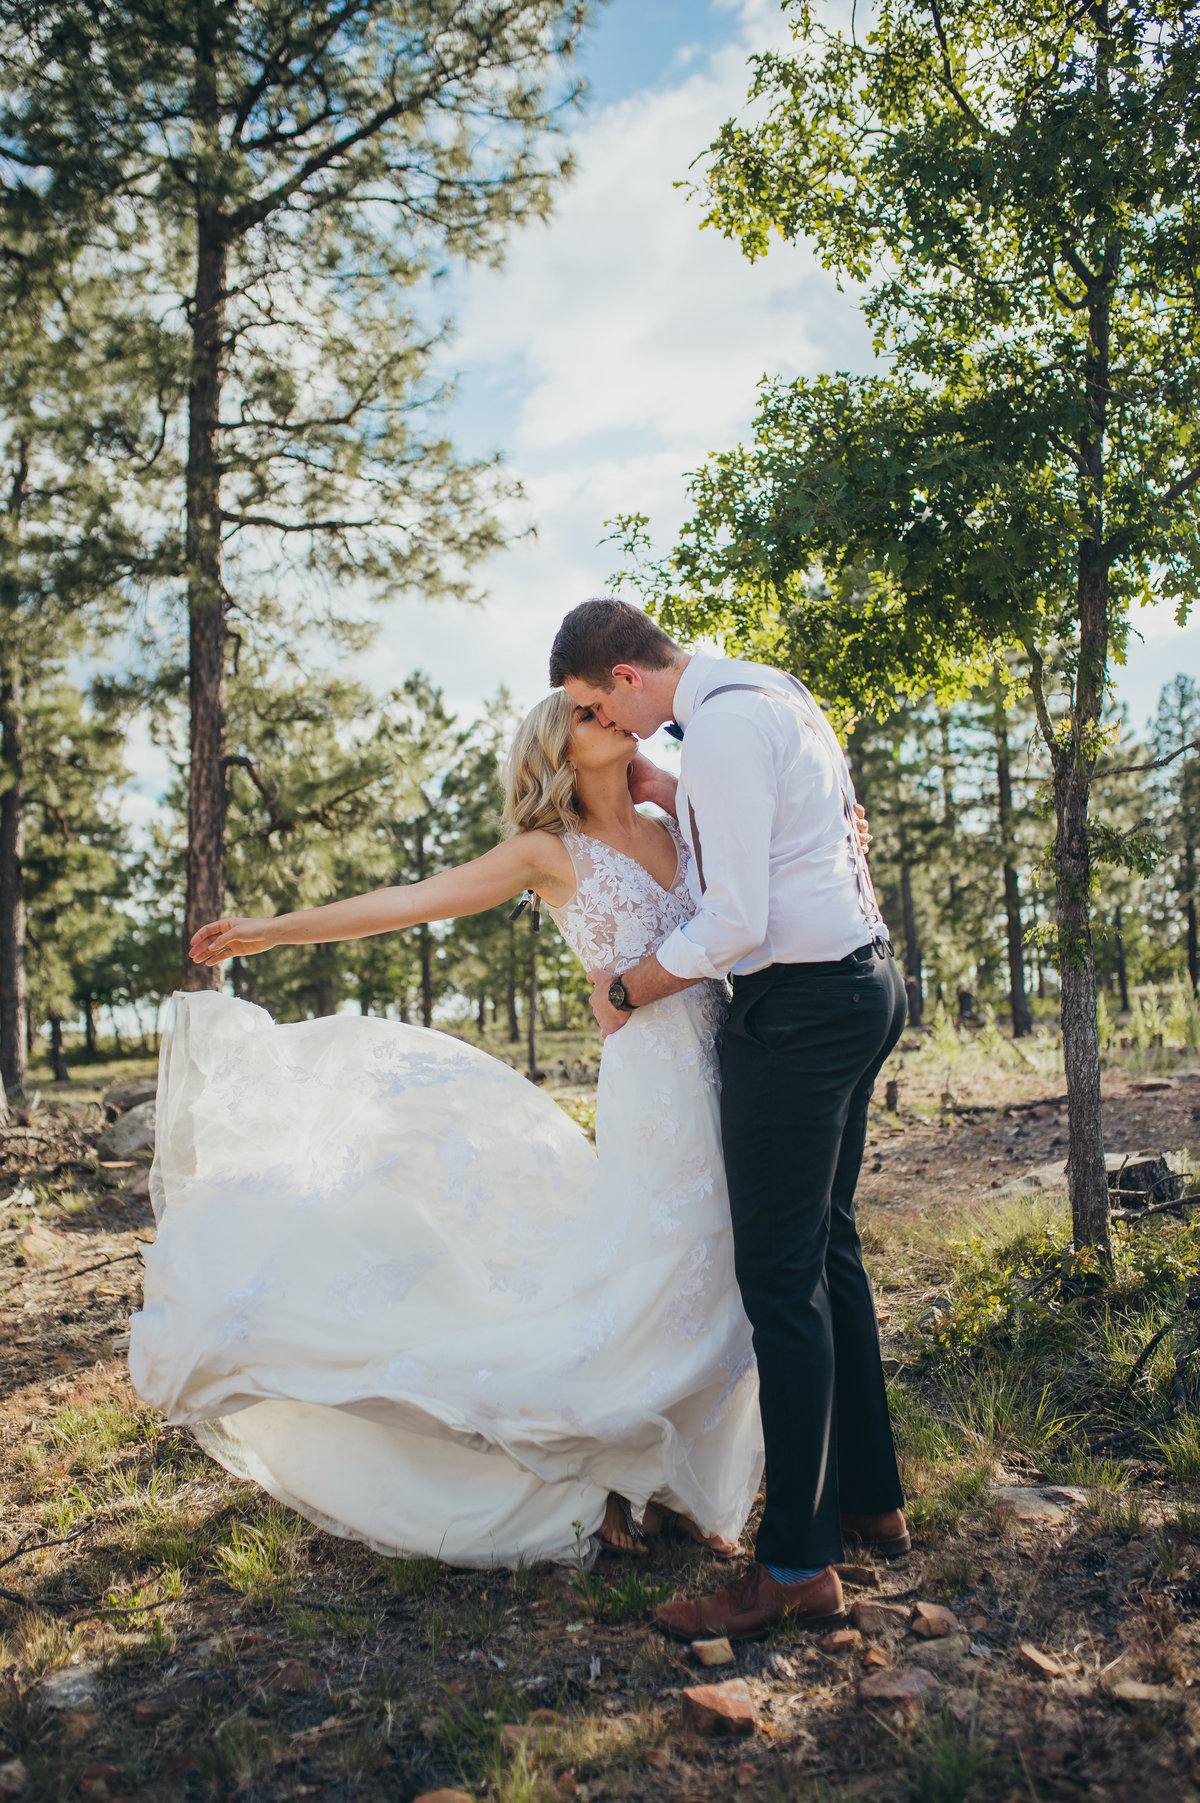 A little wedding on the Mogollon Rim near Payson, Arizona